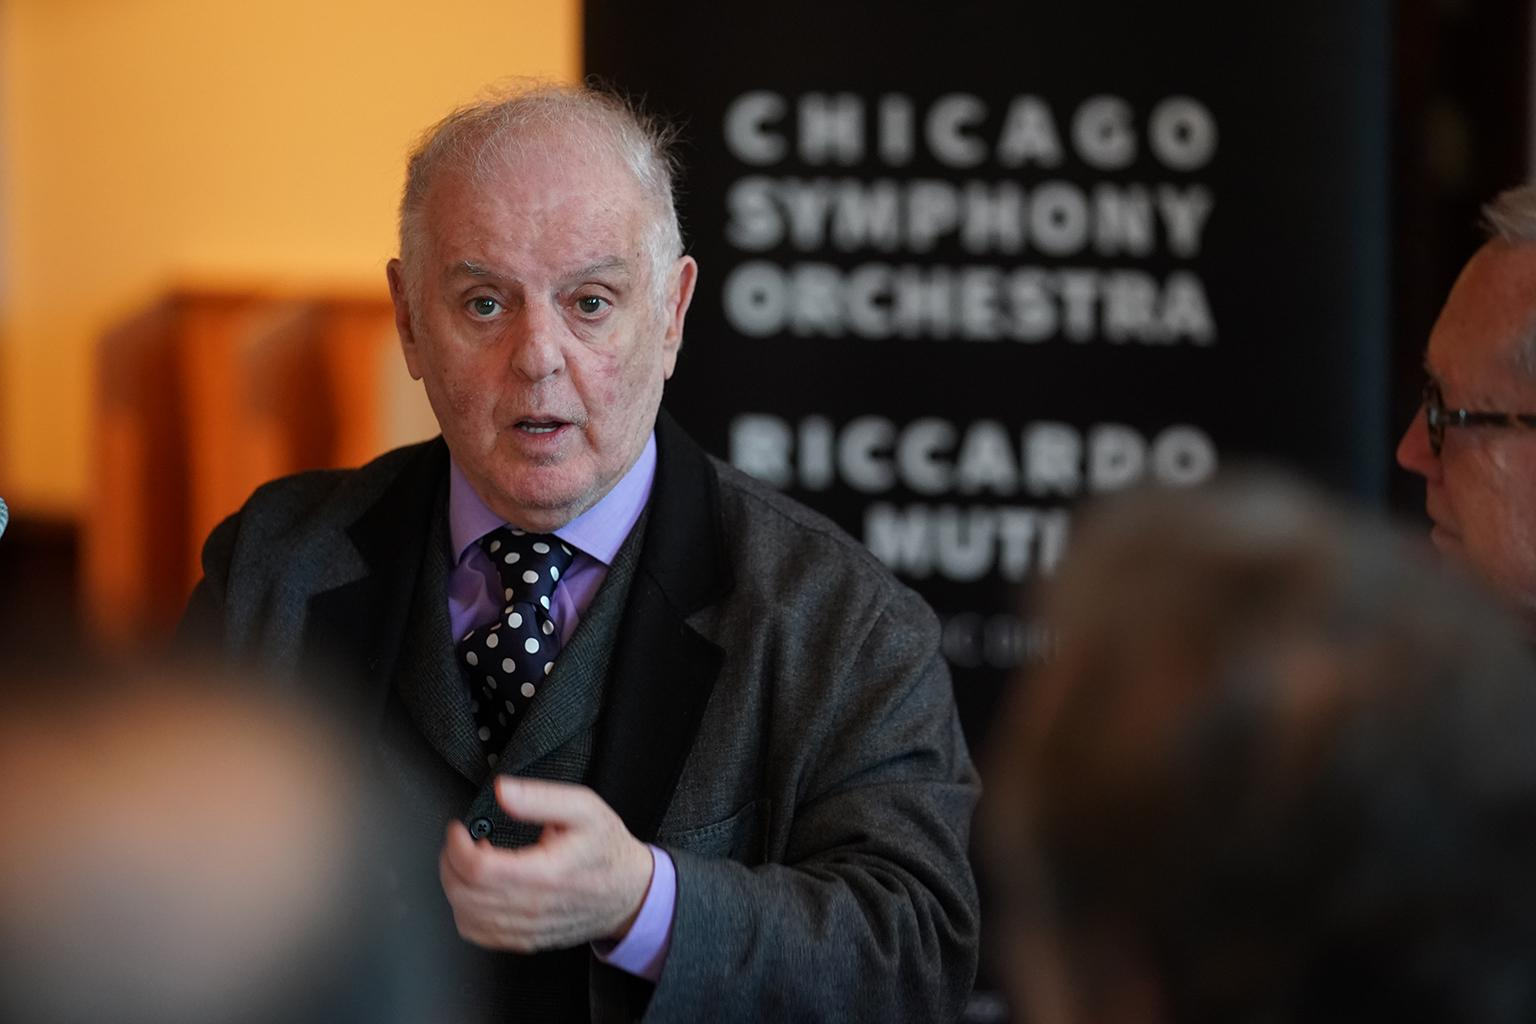 Daniel Barenboim speaks at a Chicago Symphony Orchestra press event on Monday, Oct. 29, 2018. (Credit: Todd Rosenberg)